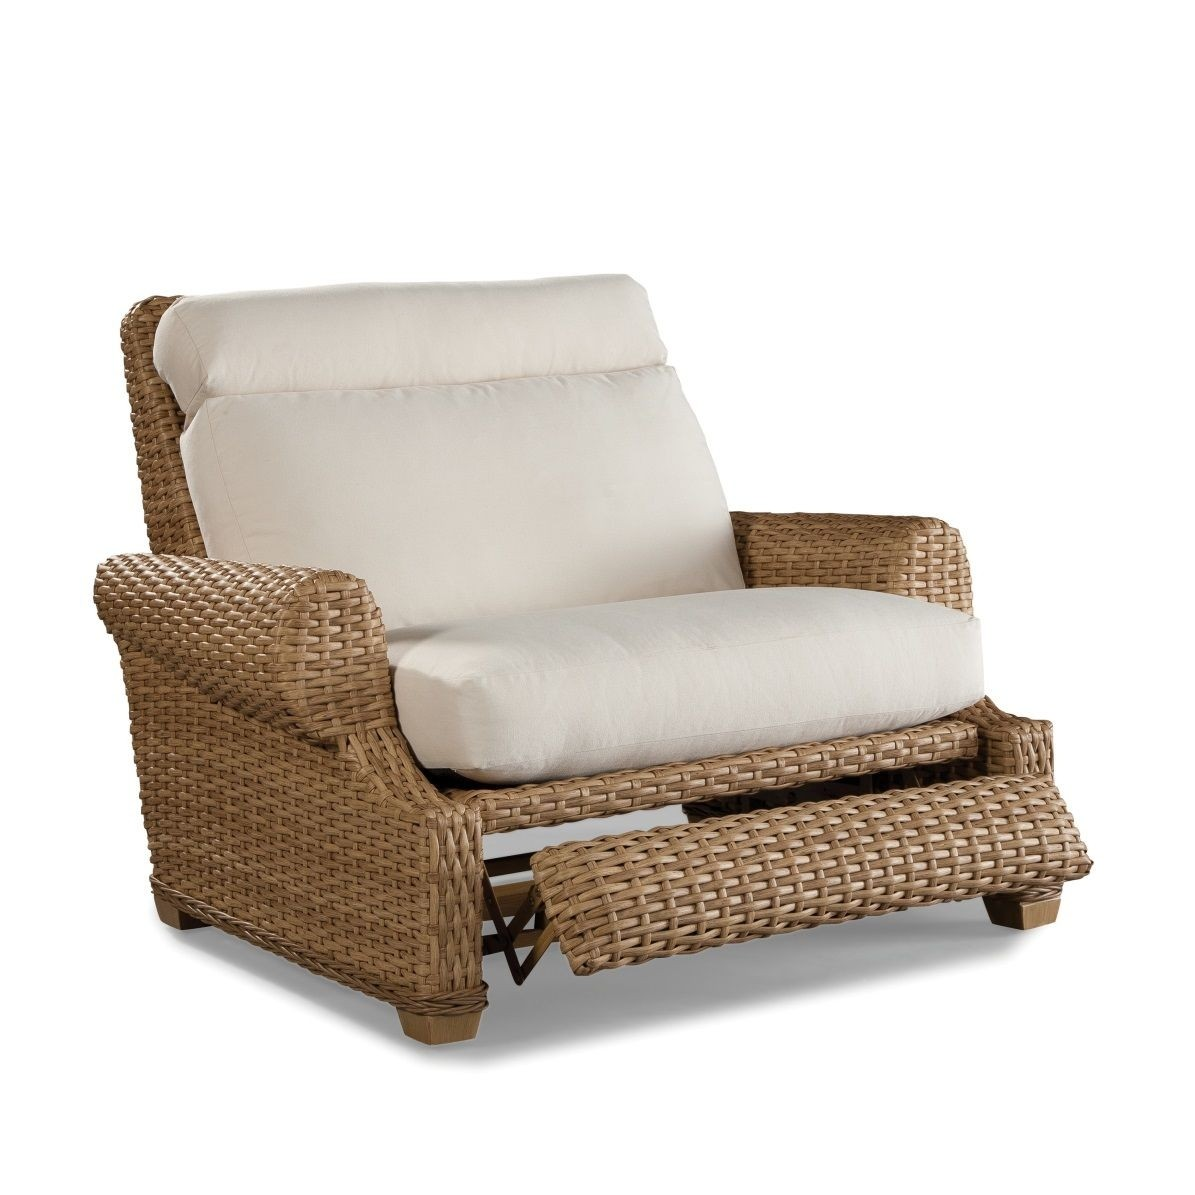 Most Expensive Recliner 1